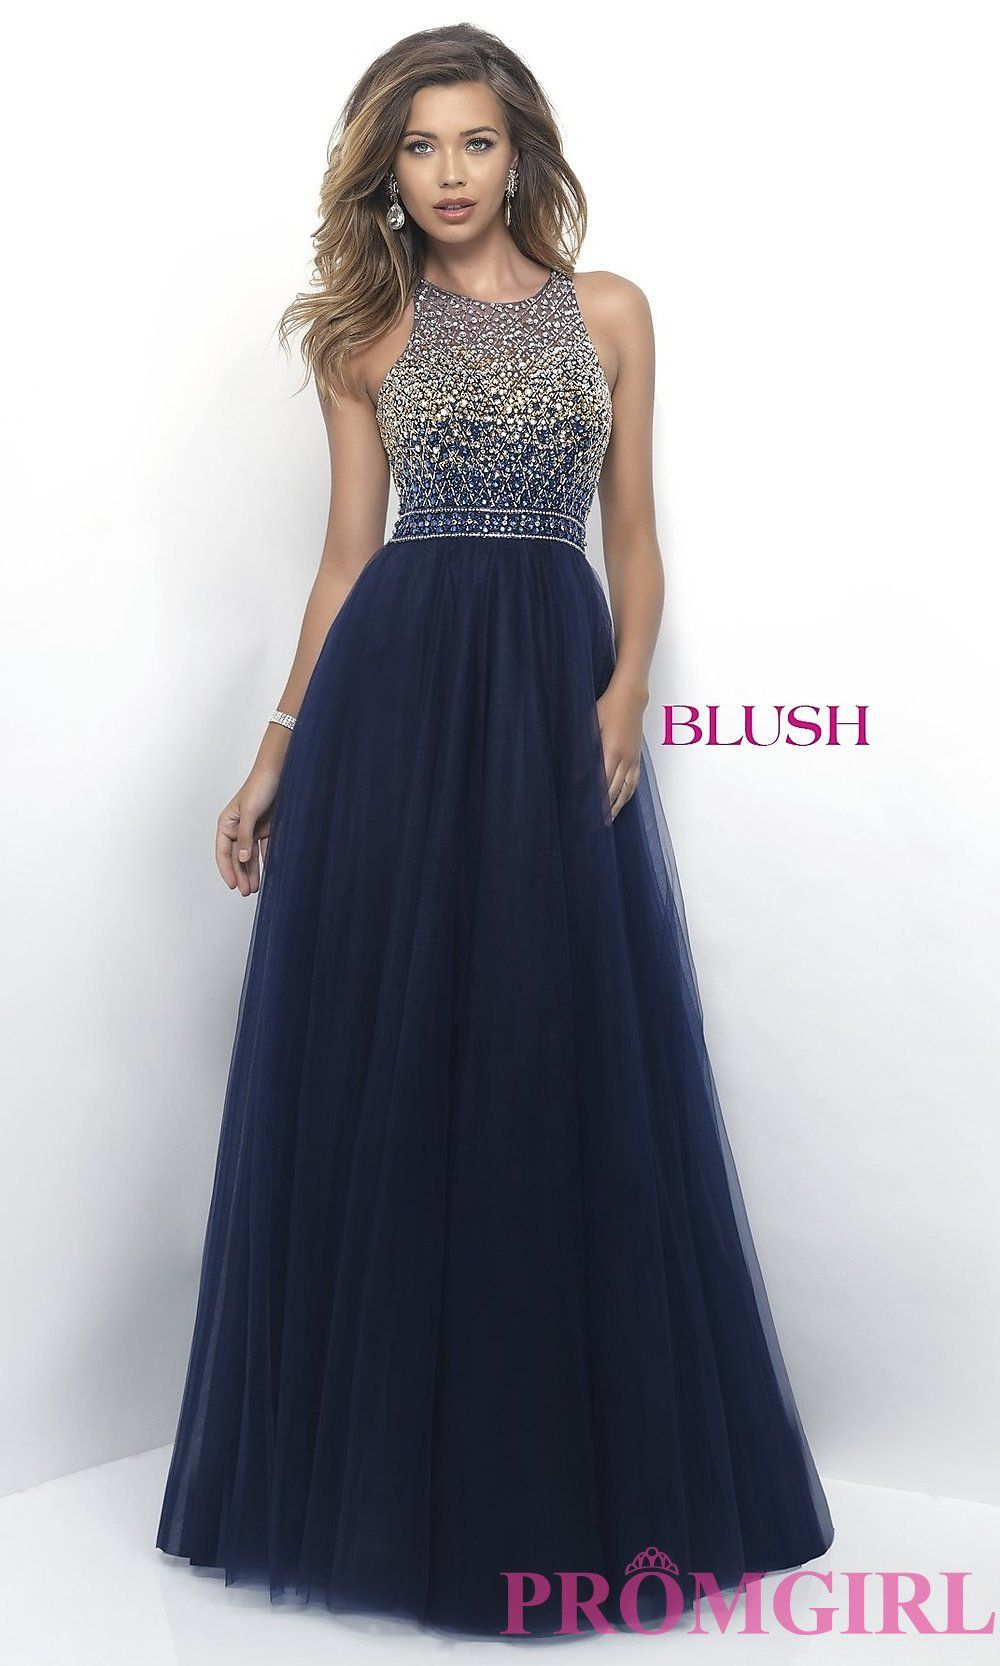 Blush A Line Prom Dress With Beaded Top In 2019 Prom Formal